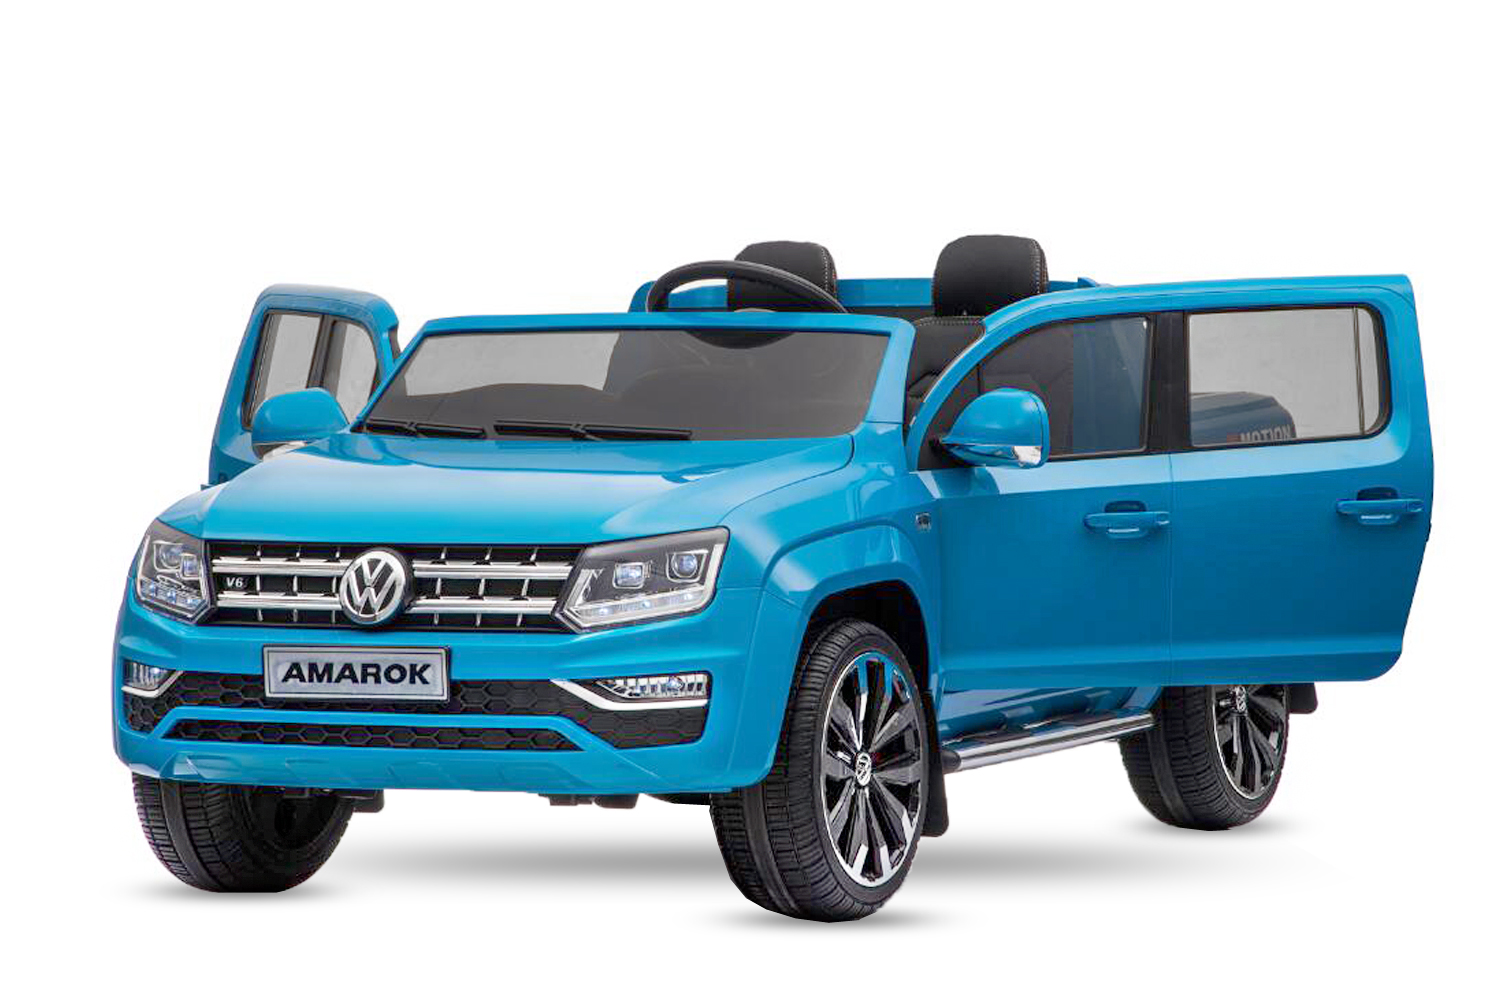 menila gmbh lizenz vw amarok kinder elektro auto 2 sitzer kinderauto pickup 2x 35w 12v 2 4g rc. Black Bedroom Furniture Sets. Home Design Ideas